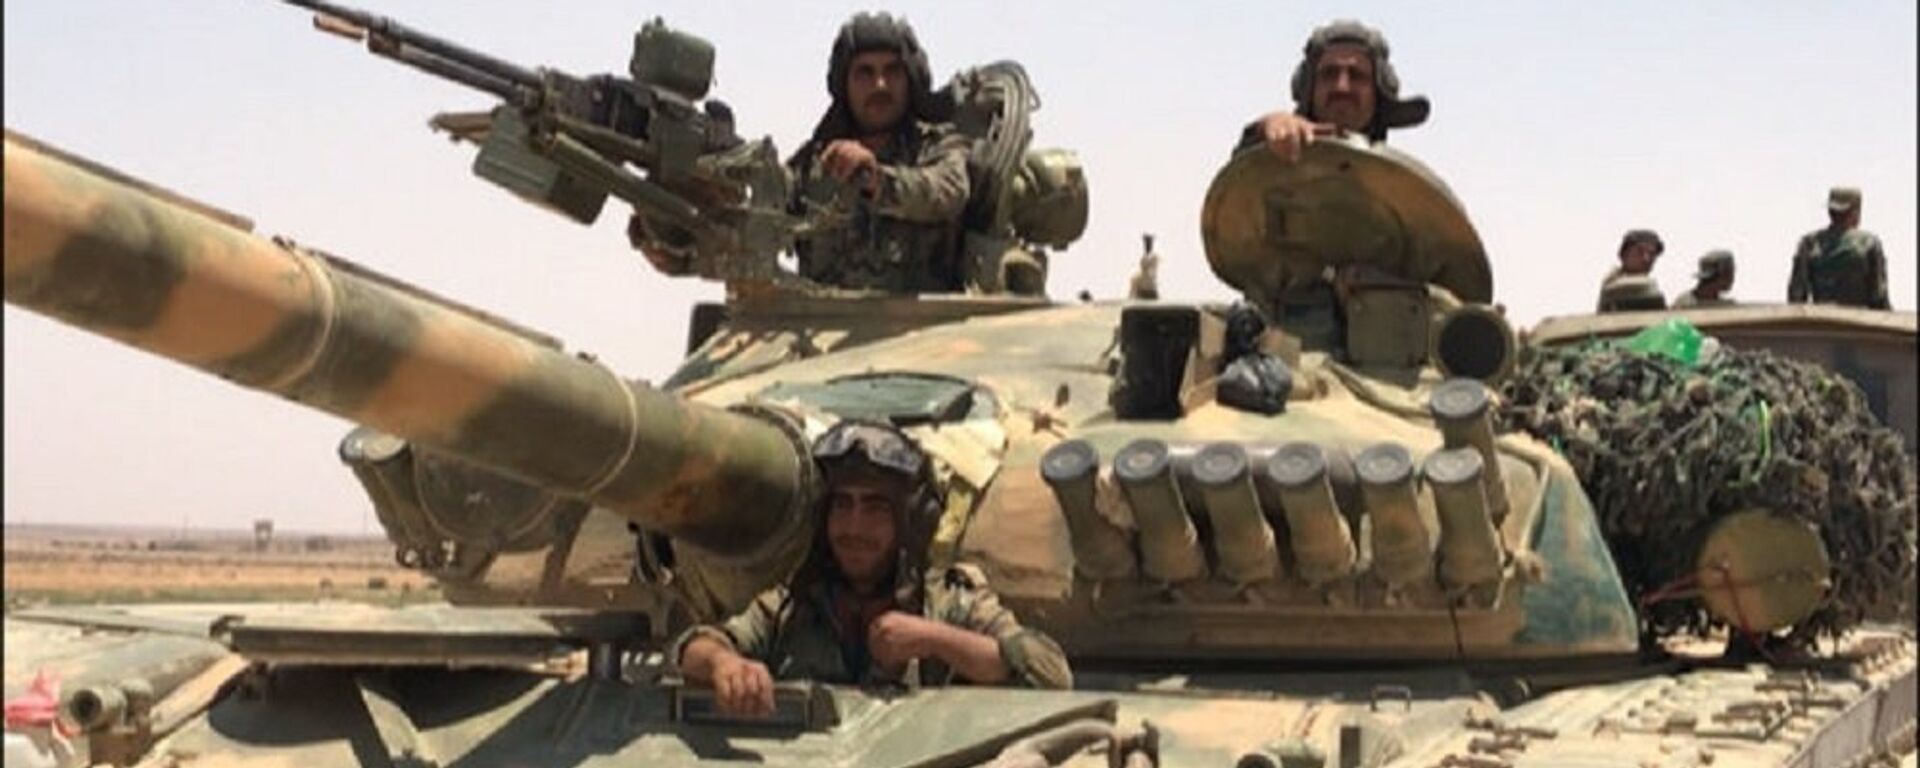 The Syrian Army in Daraa Province on the border with Jordan - Sputnik International, 1920, 31.08.2021